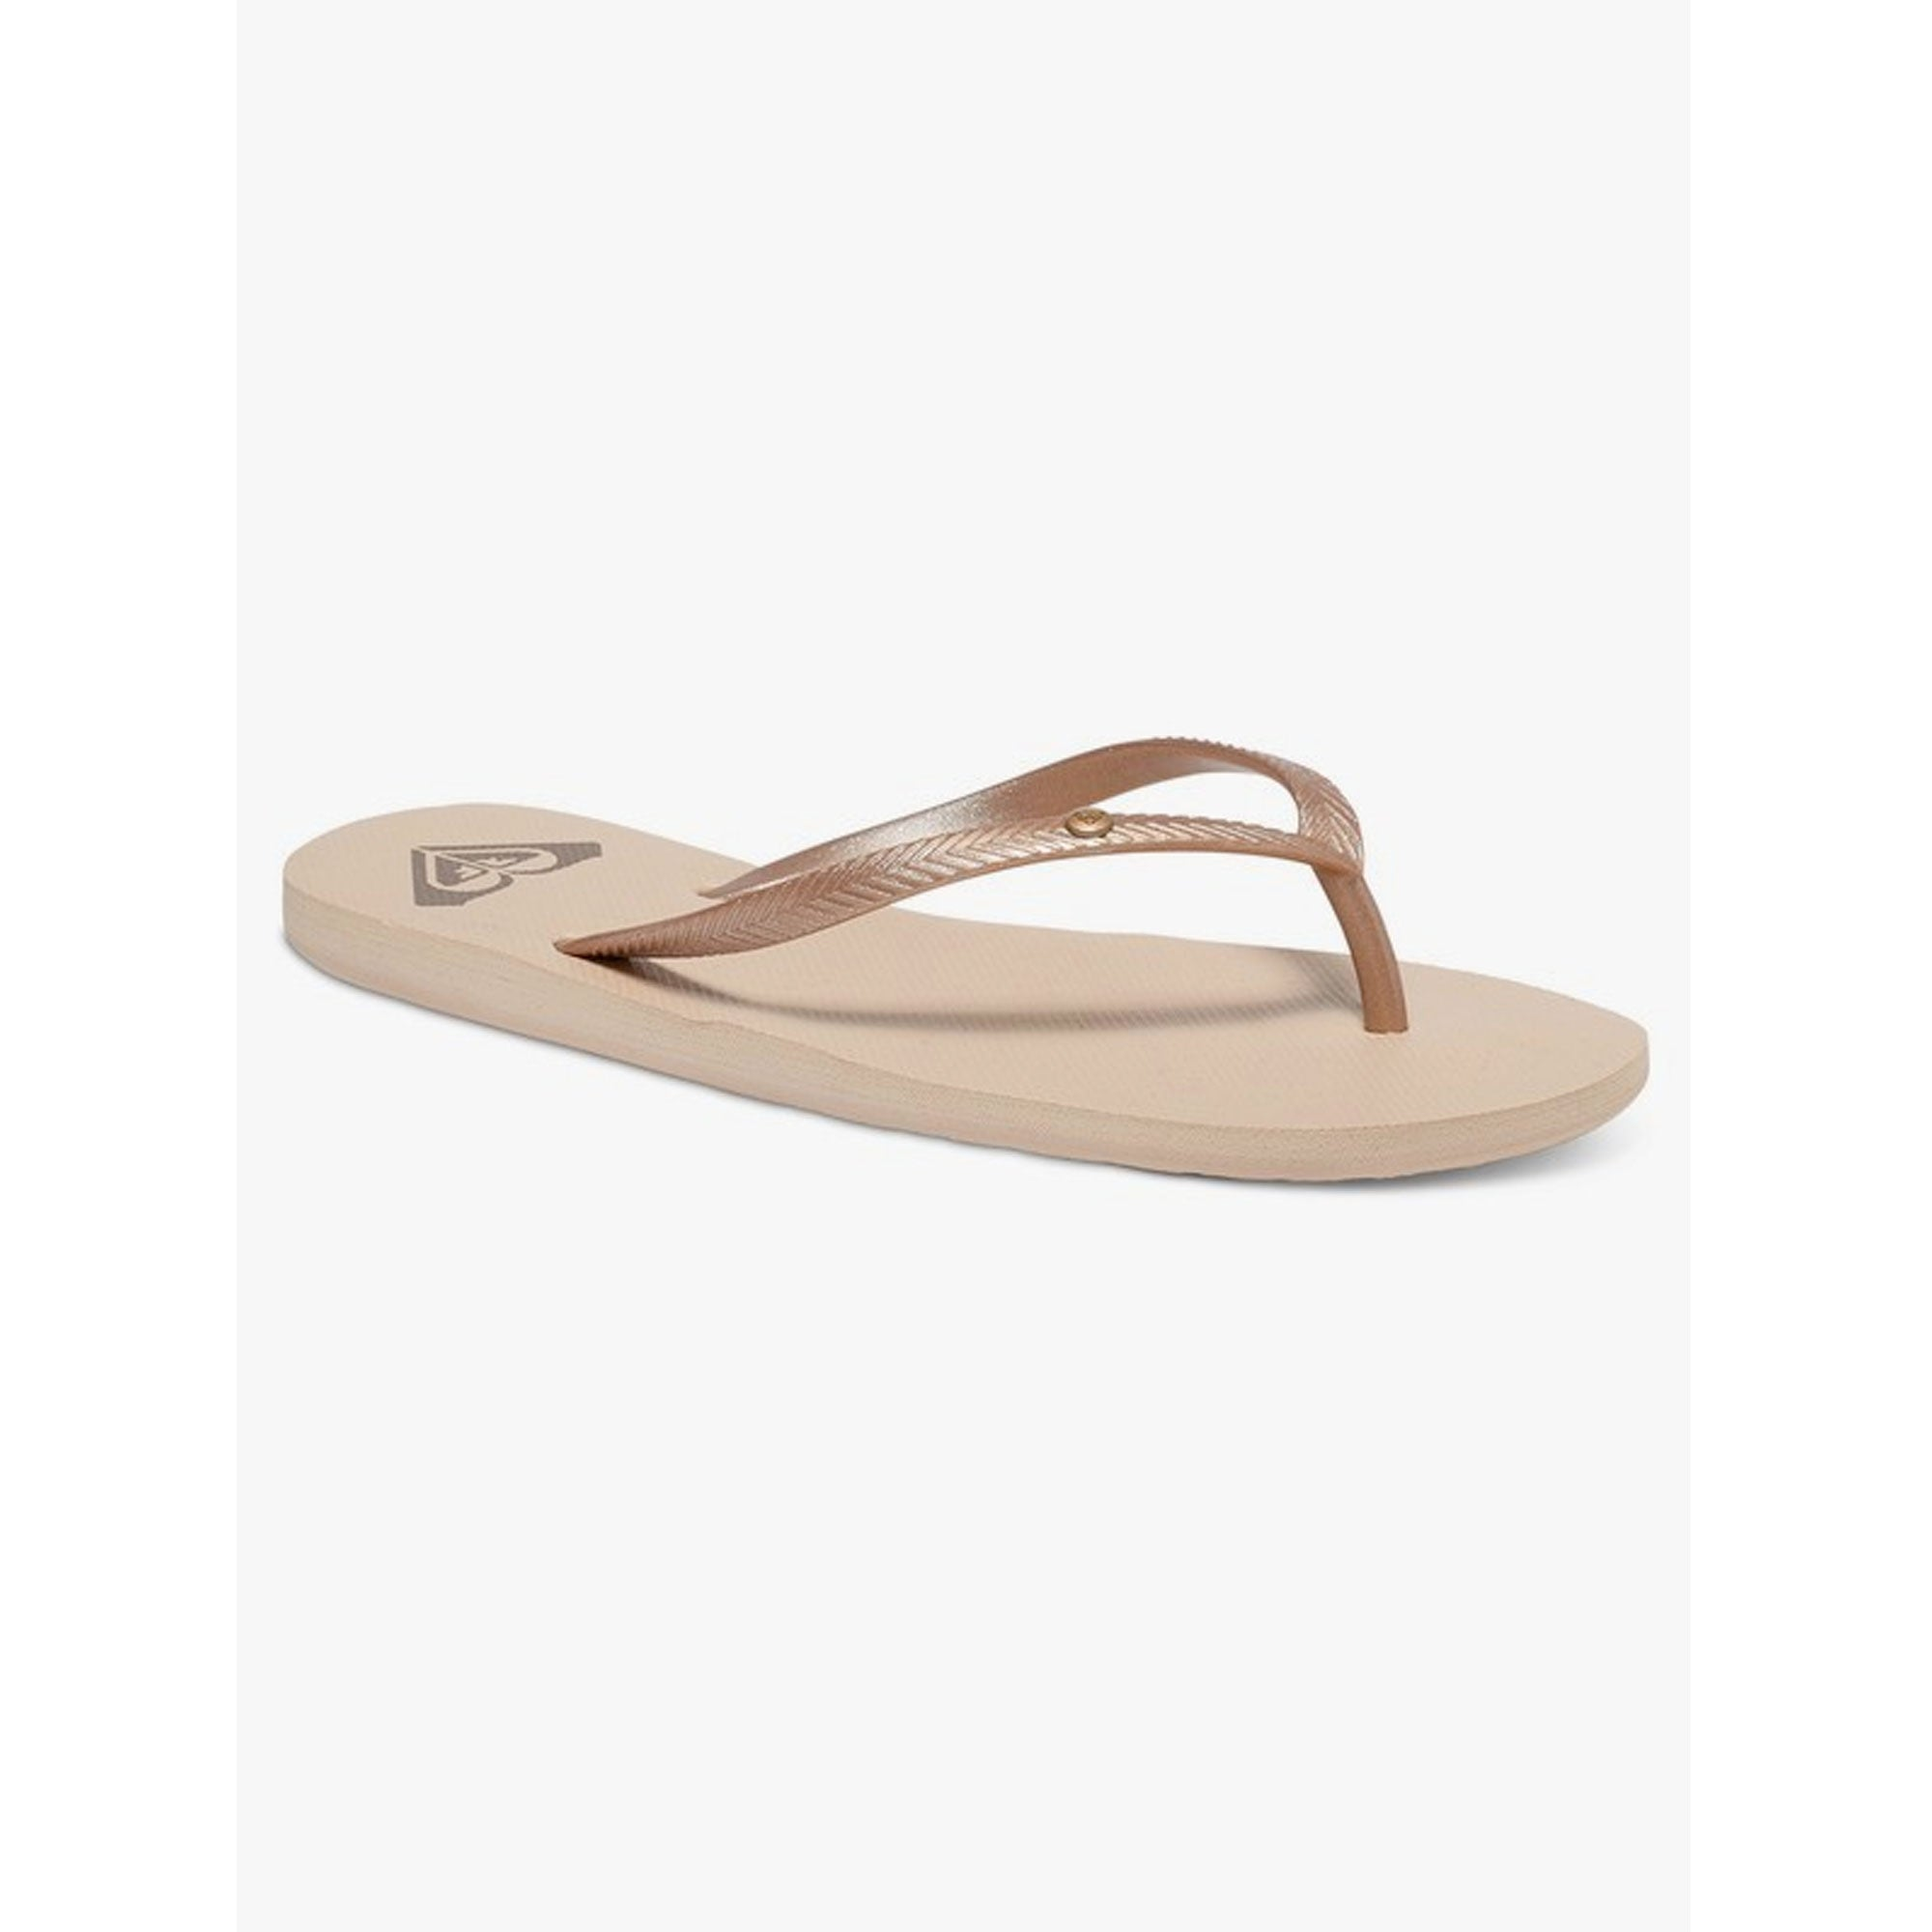 Roxy Bermuda II Women's Sandals